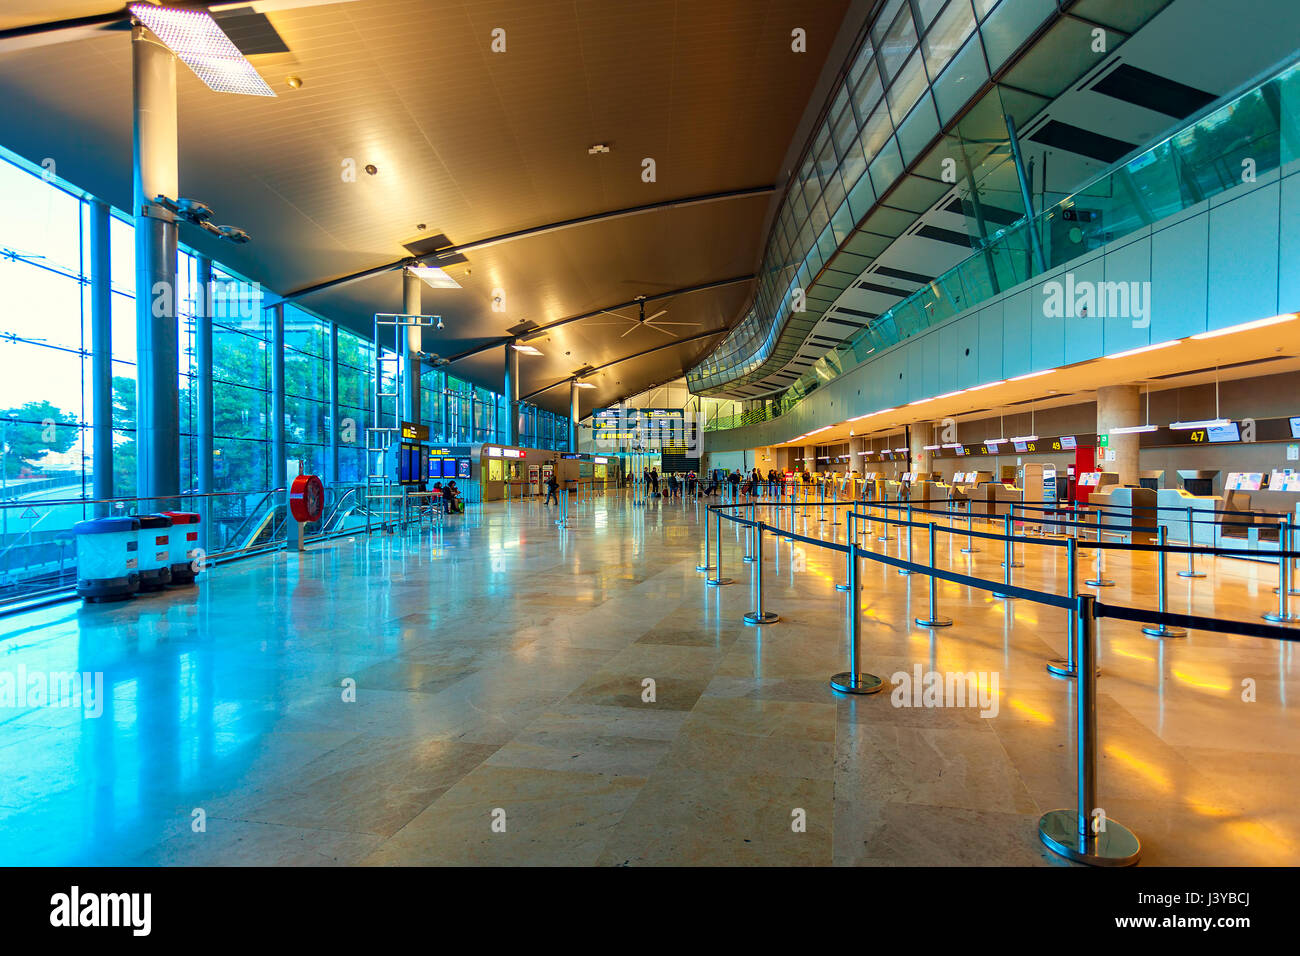 spain airport stockfotos spain airport bilder alamy. Black Bedroom Furniture Sets. Home Design Ideas